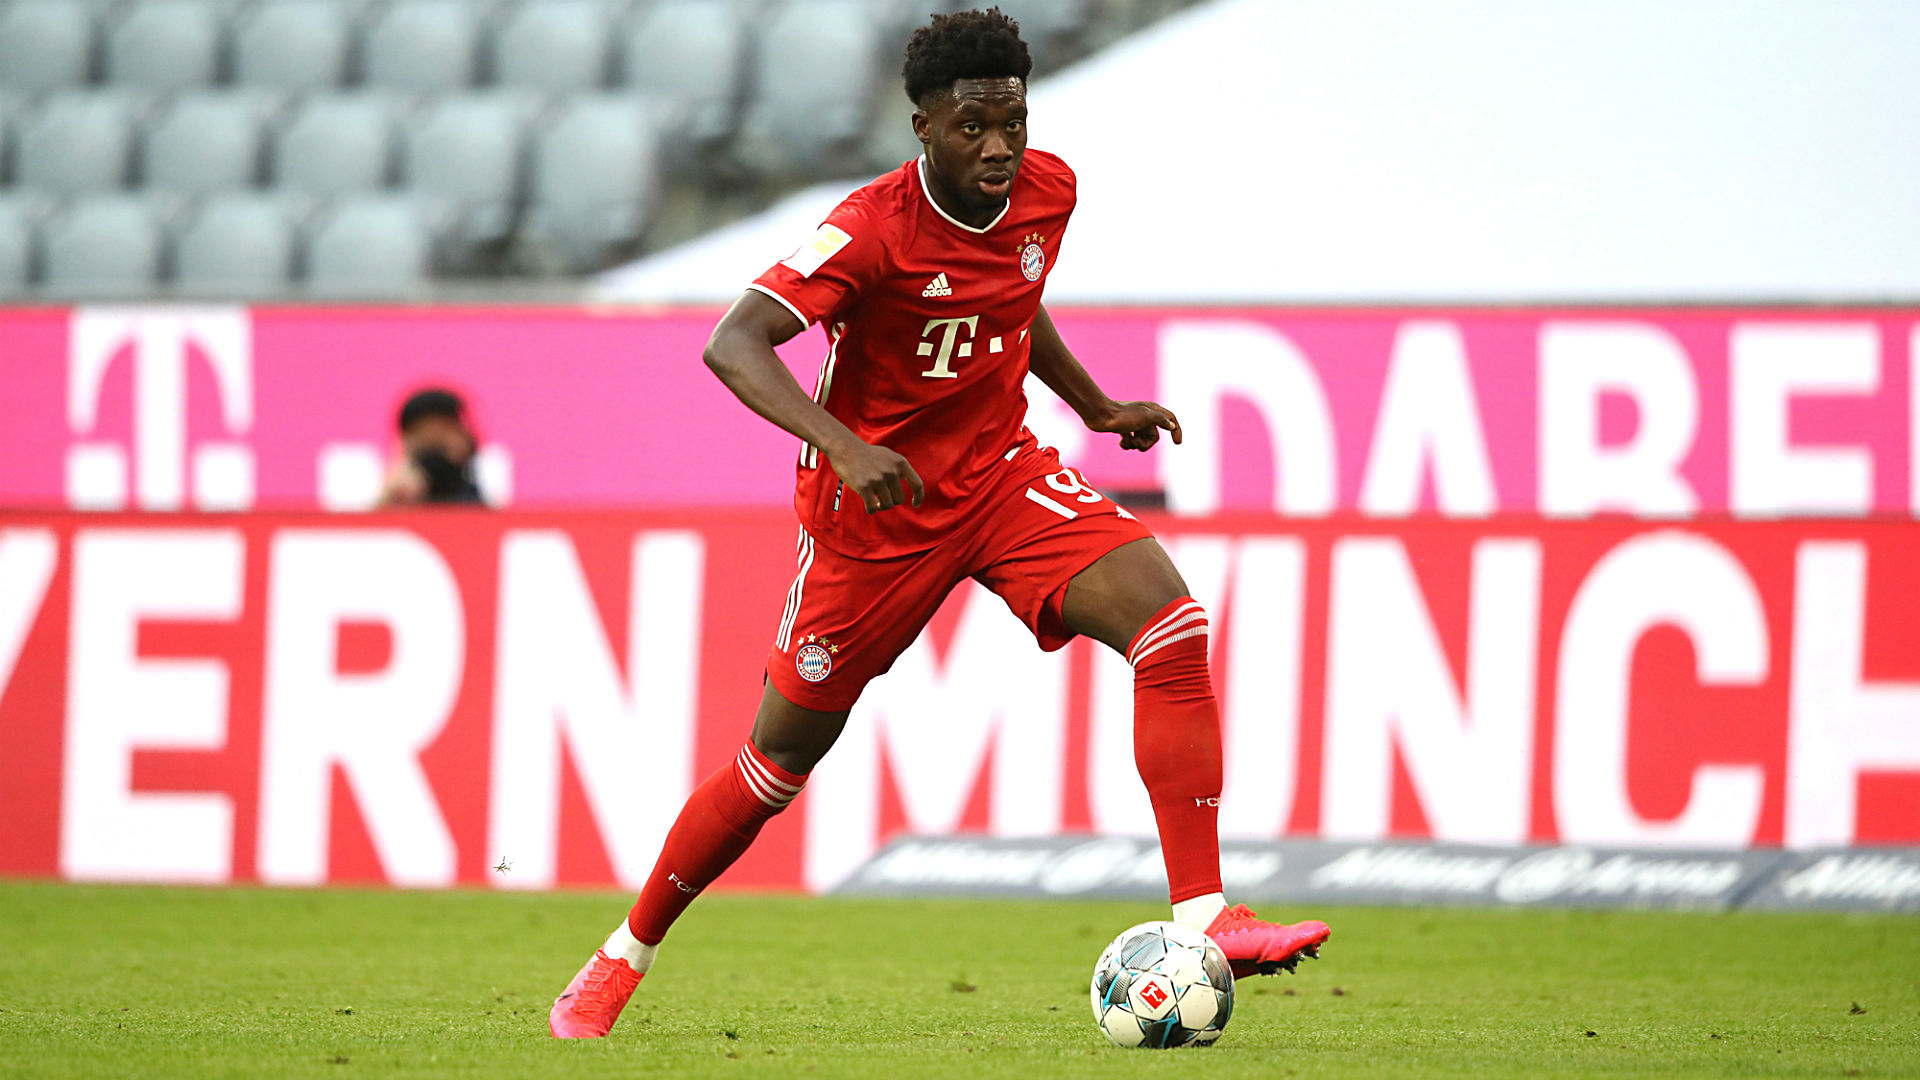 Alphonso Davies breaks Bundesliga speed record, adds league title to meteoric rise with Bayern Munich 1